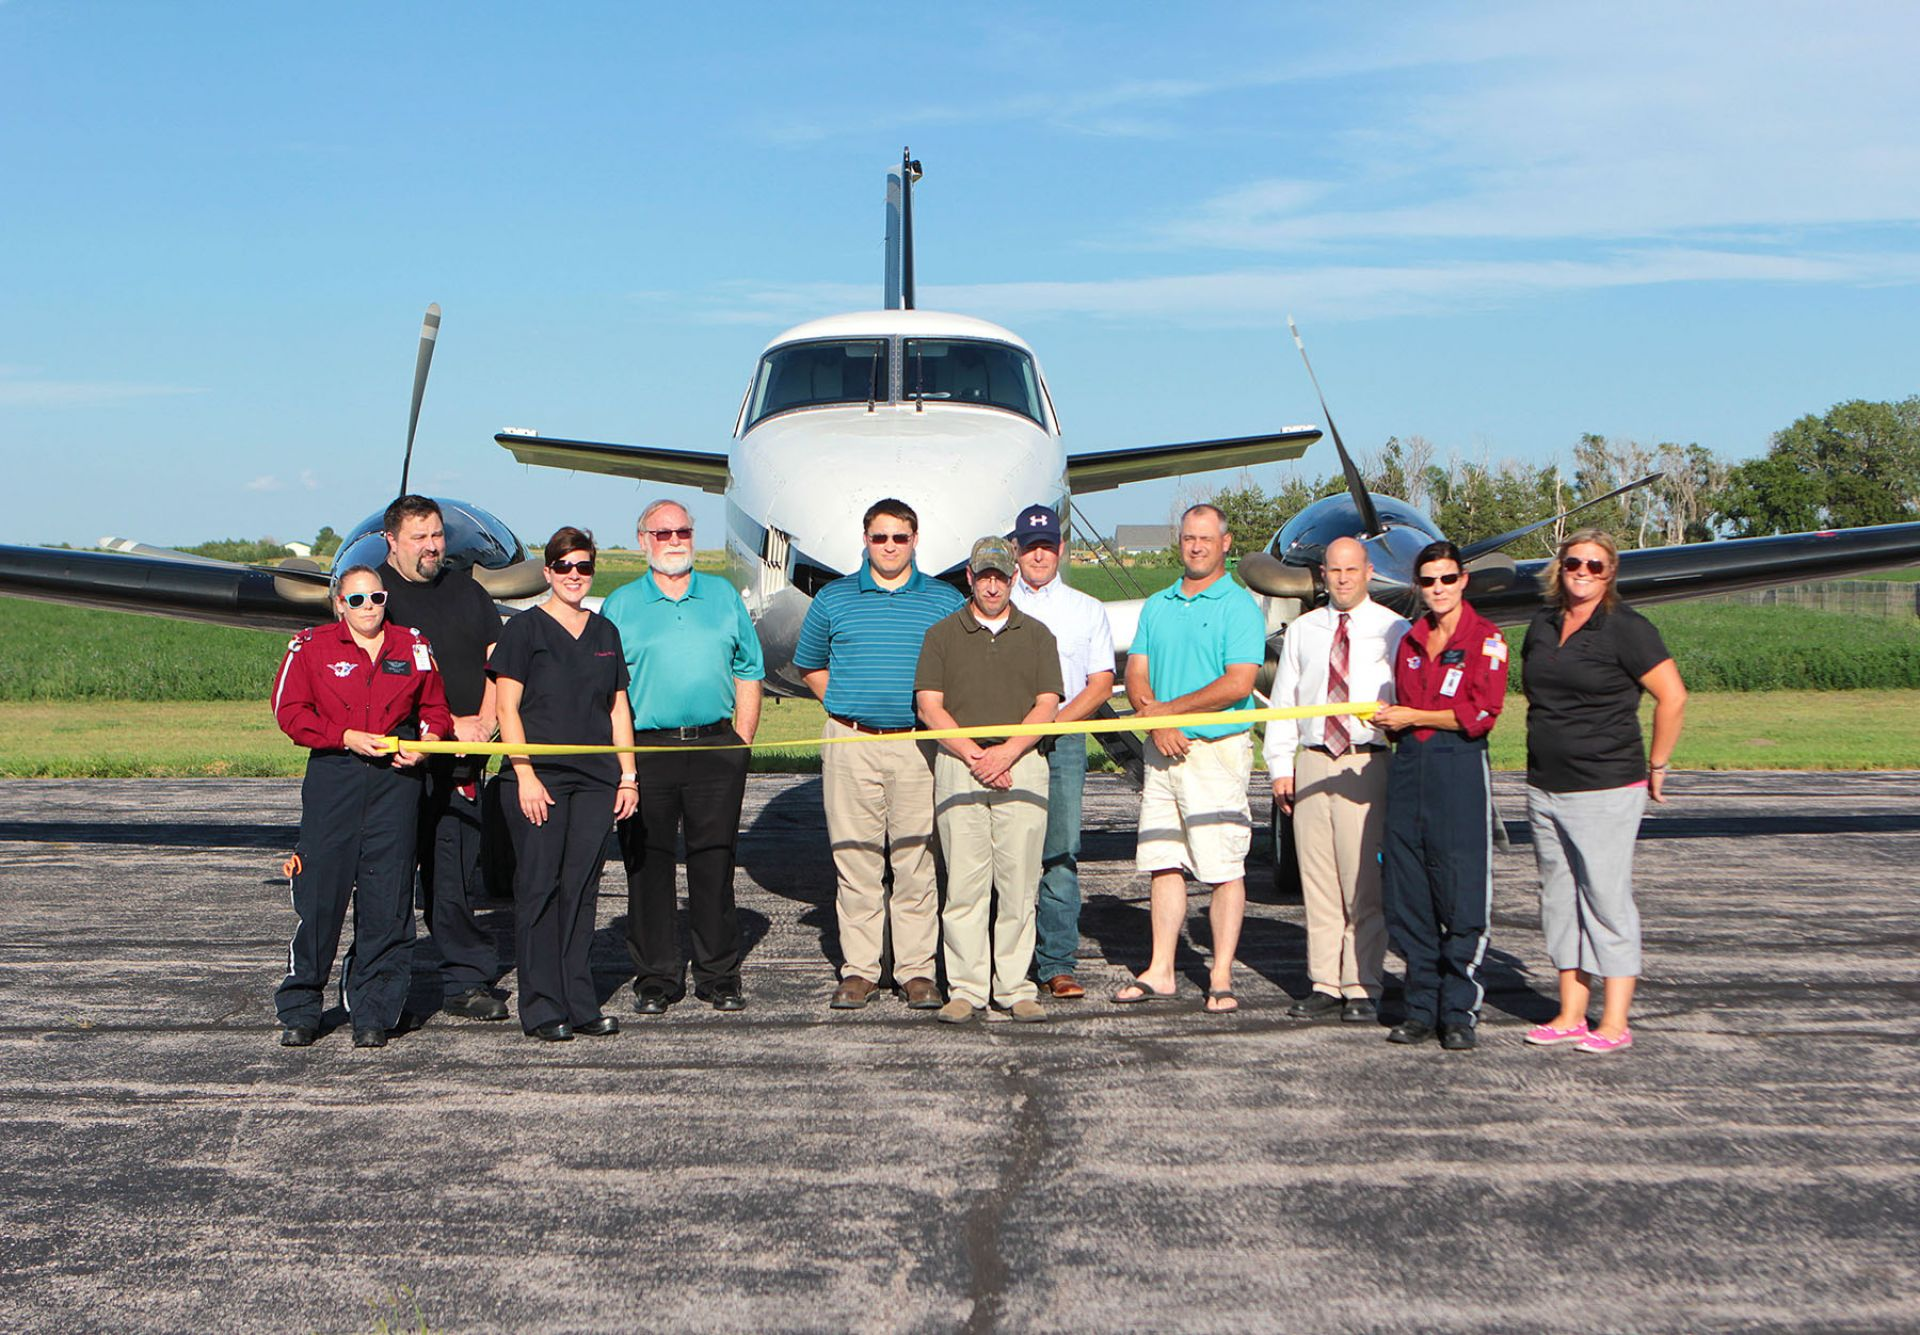 Pictured, L-R: Michelle Rood, EagleMed RN Flight Nurse; Ryan Allen, EagleMed Pilot; Cassie Banks NP-C, DNP; GMHS CEO William Giles; Gordon City Manager Jacob Sheridan; Glenn Spaugh; Mark Kruger; Eric Halverson; Dr. Christopher Costa, MD; Wendy Blackos, RN, Flight Nurse; and Holly Anderson, Area 3 Director.